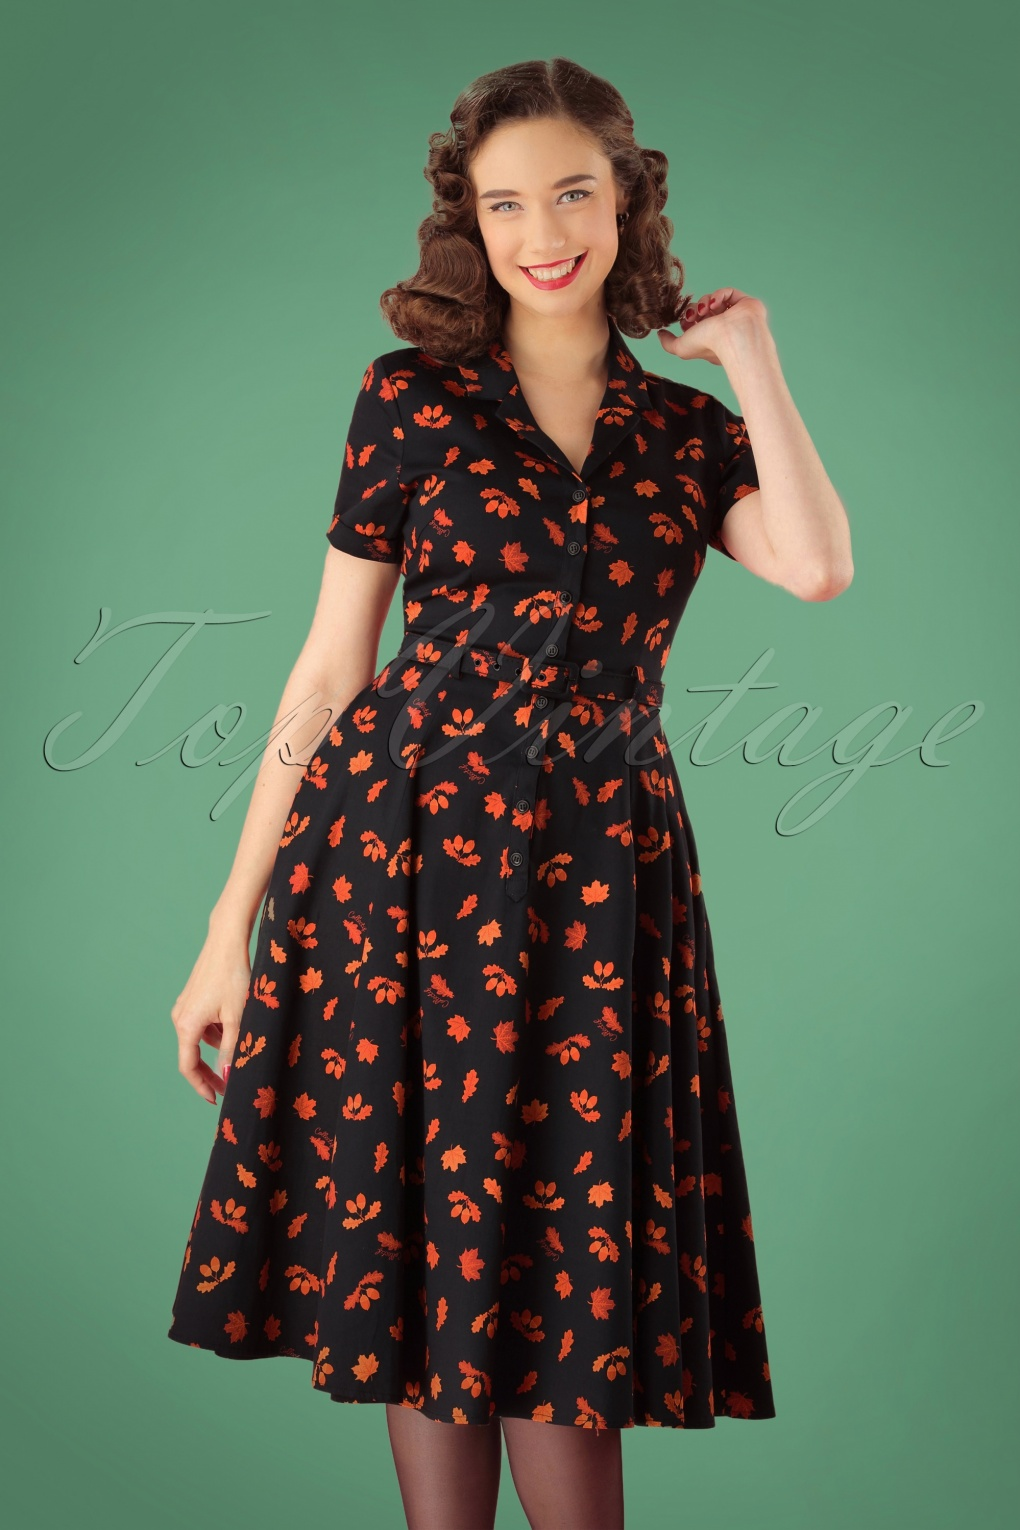 1950s Swing Dresses | 50s Swing Dress 50s Caterina Acorn Swing Dress in Black £53.14 AT vintagedancer.com